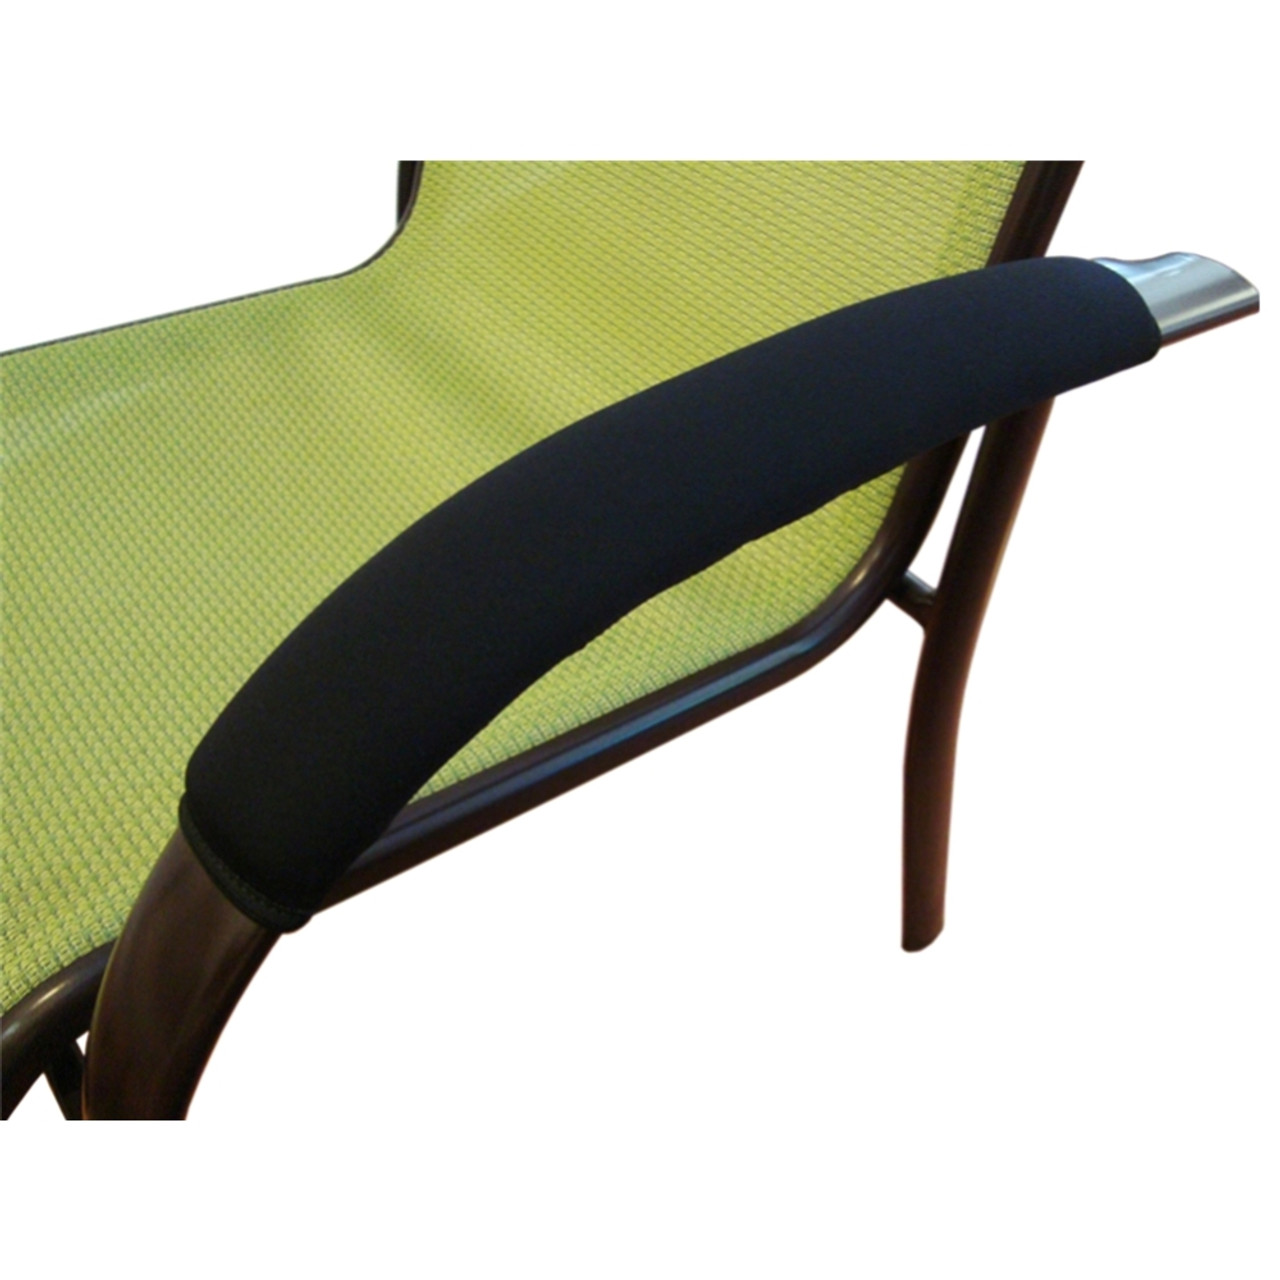 Ergo360 Soft Neoprene Armrest Covers For Railing And Loop Style Chair  Armrests